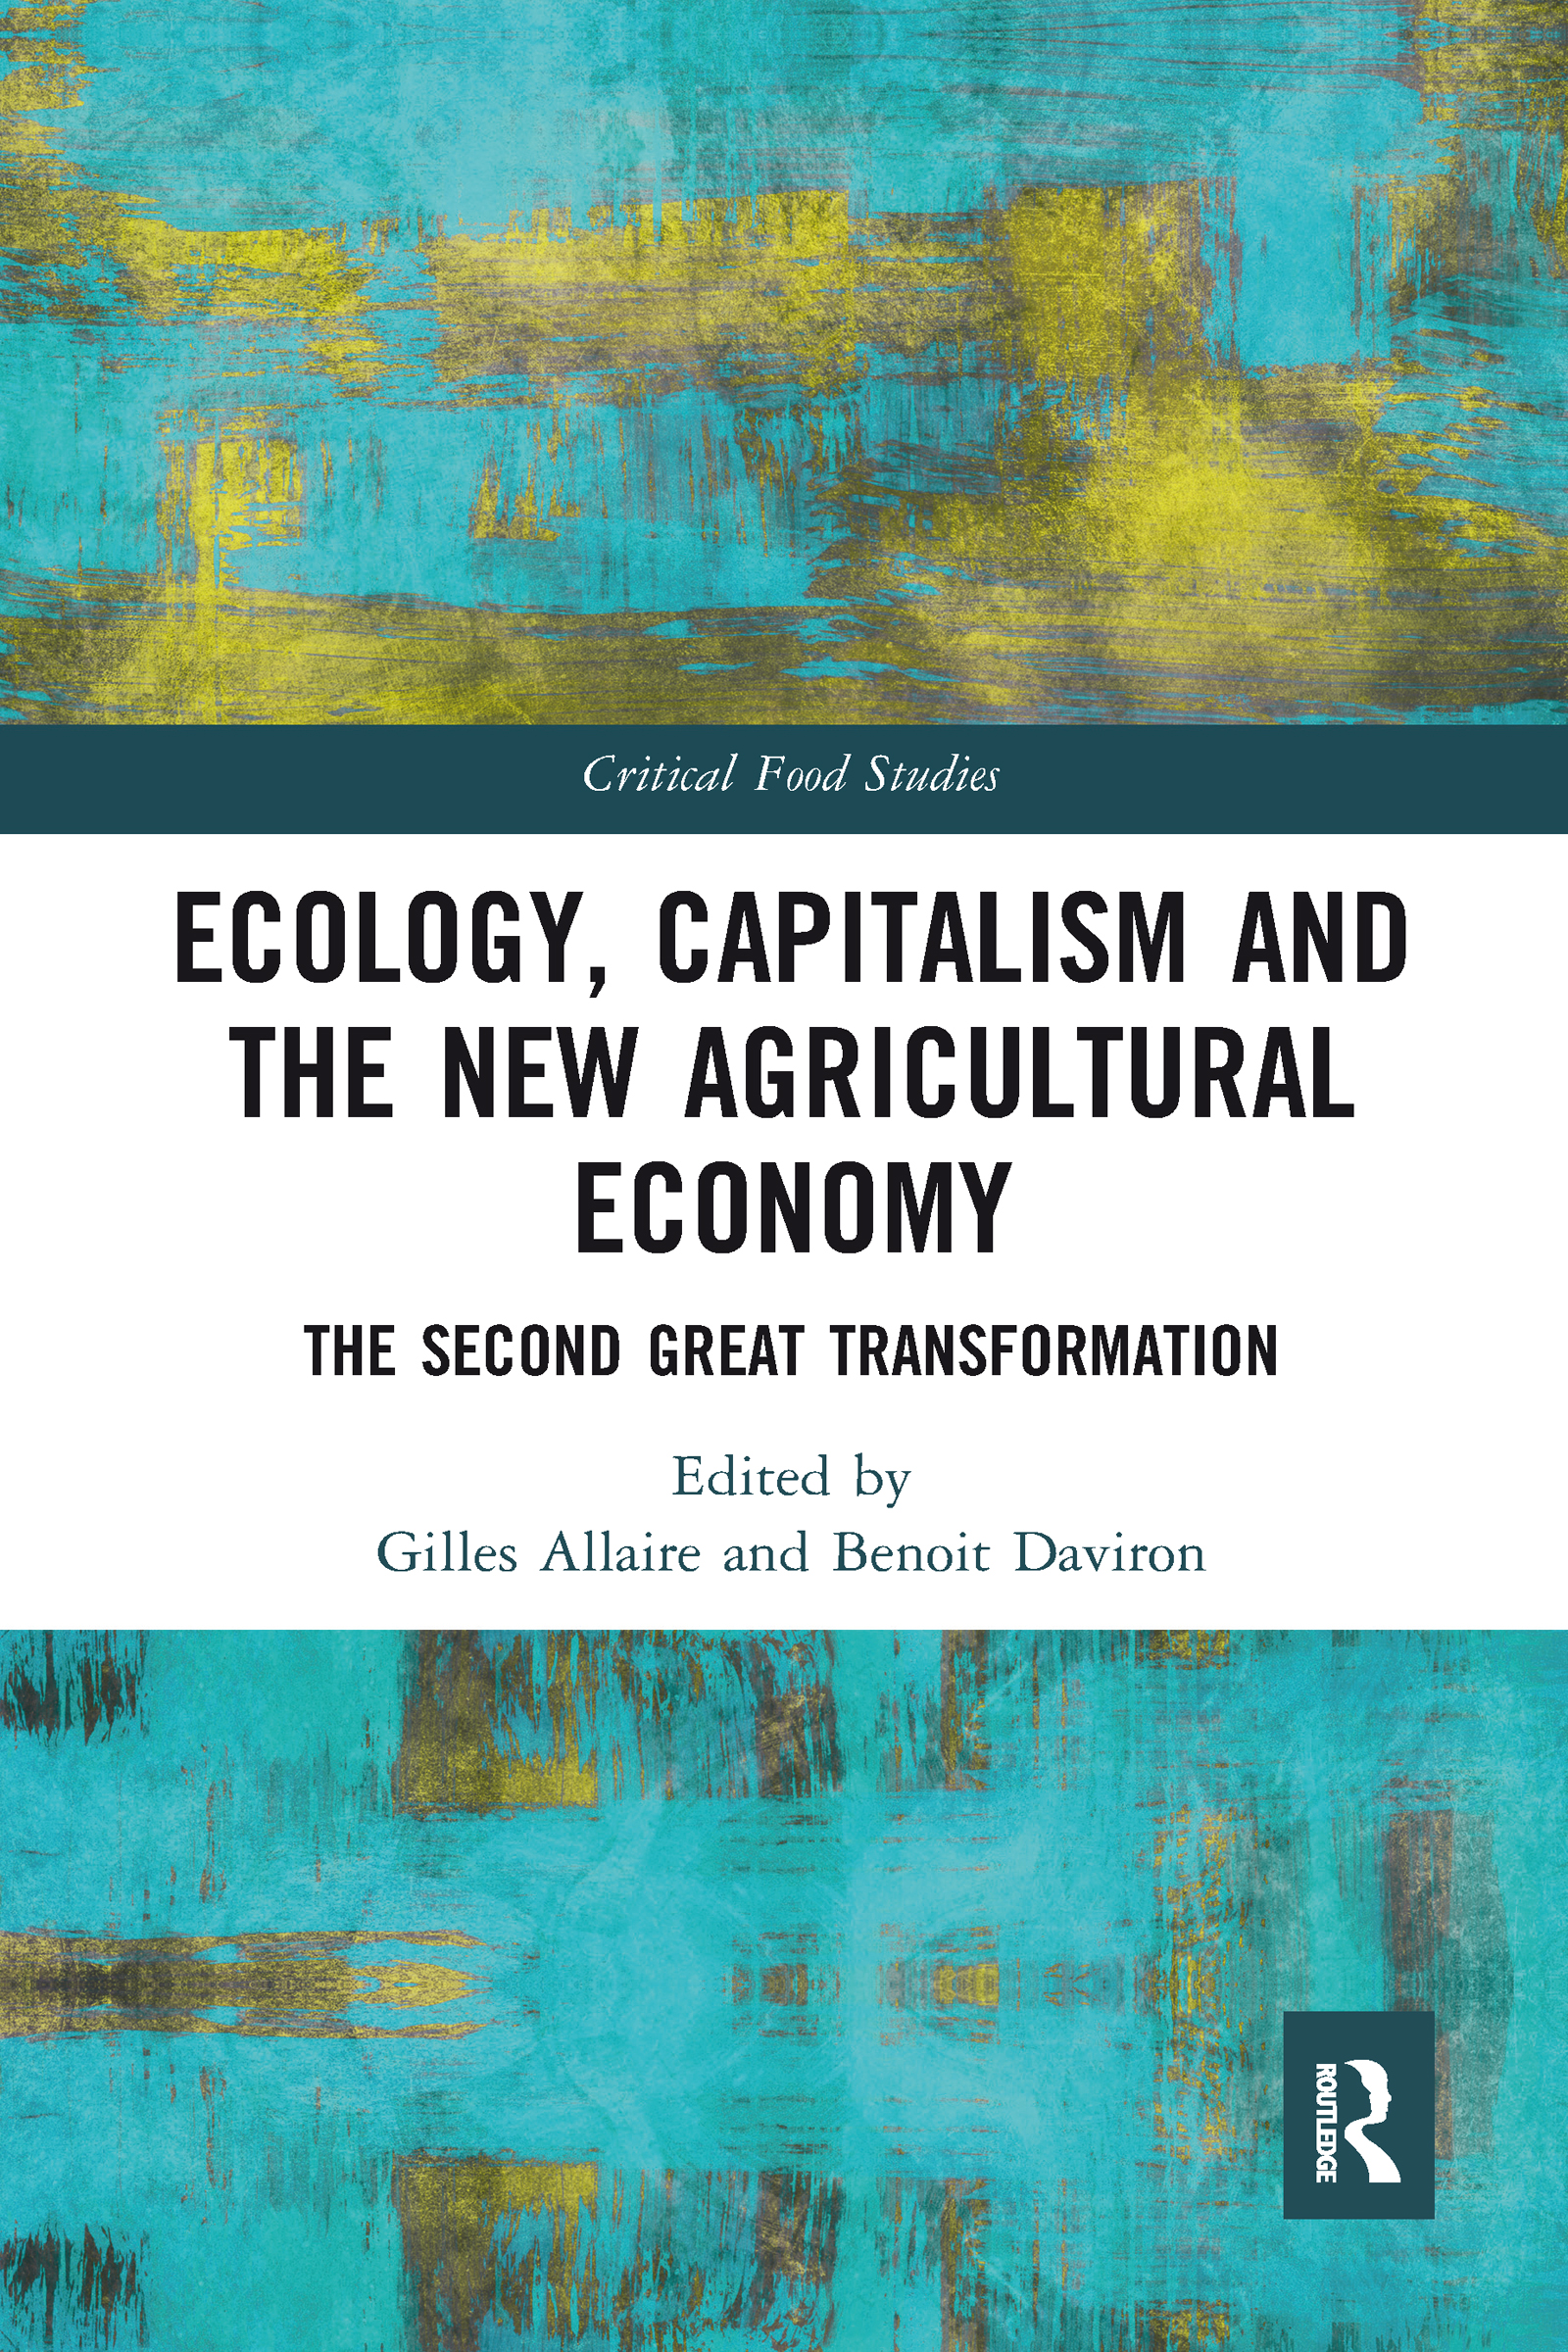 Ecology, Capitalism and the New Agricultural Economy